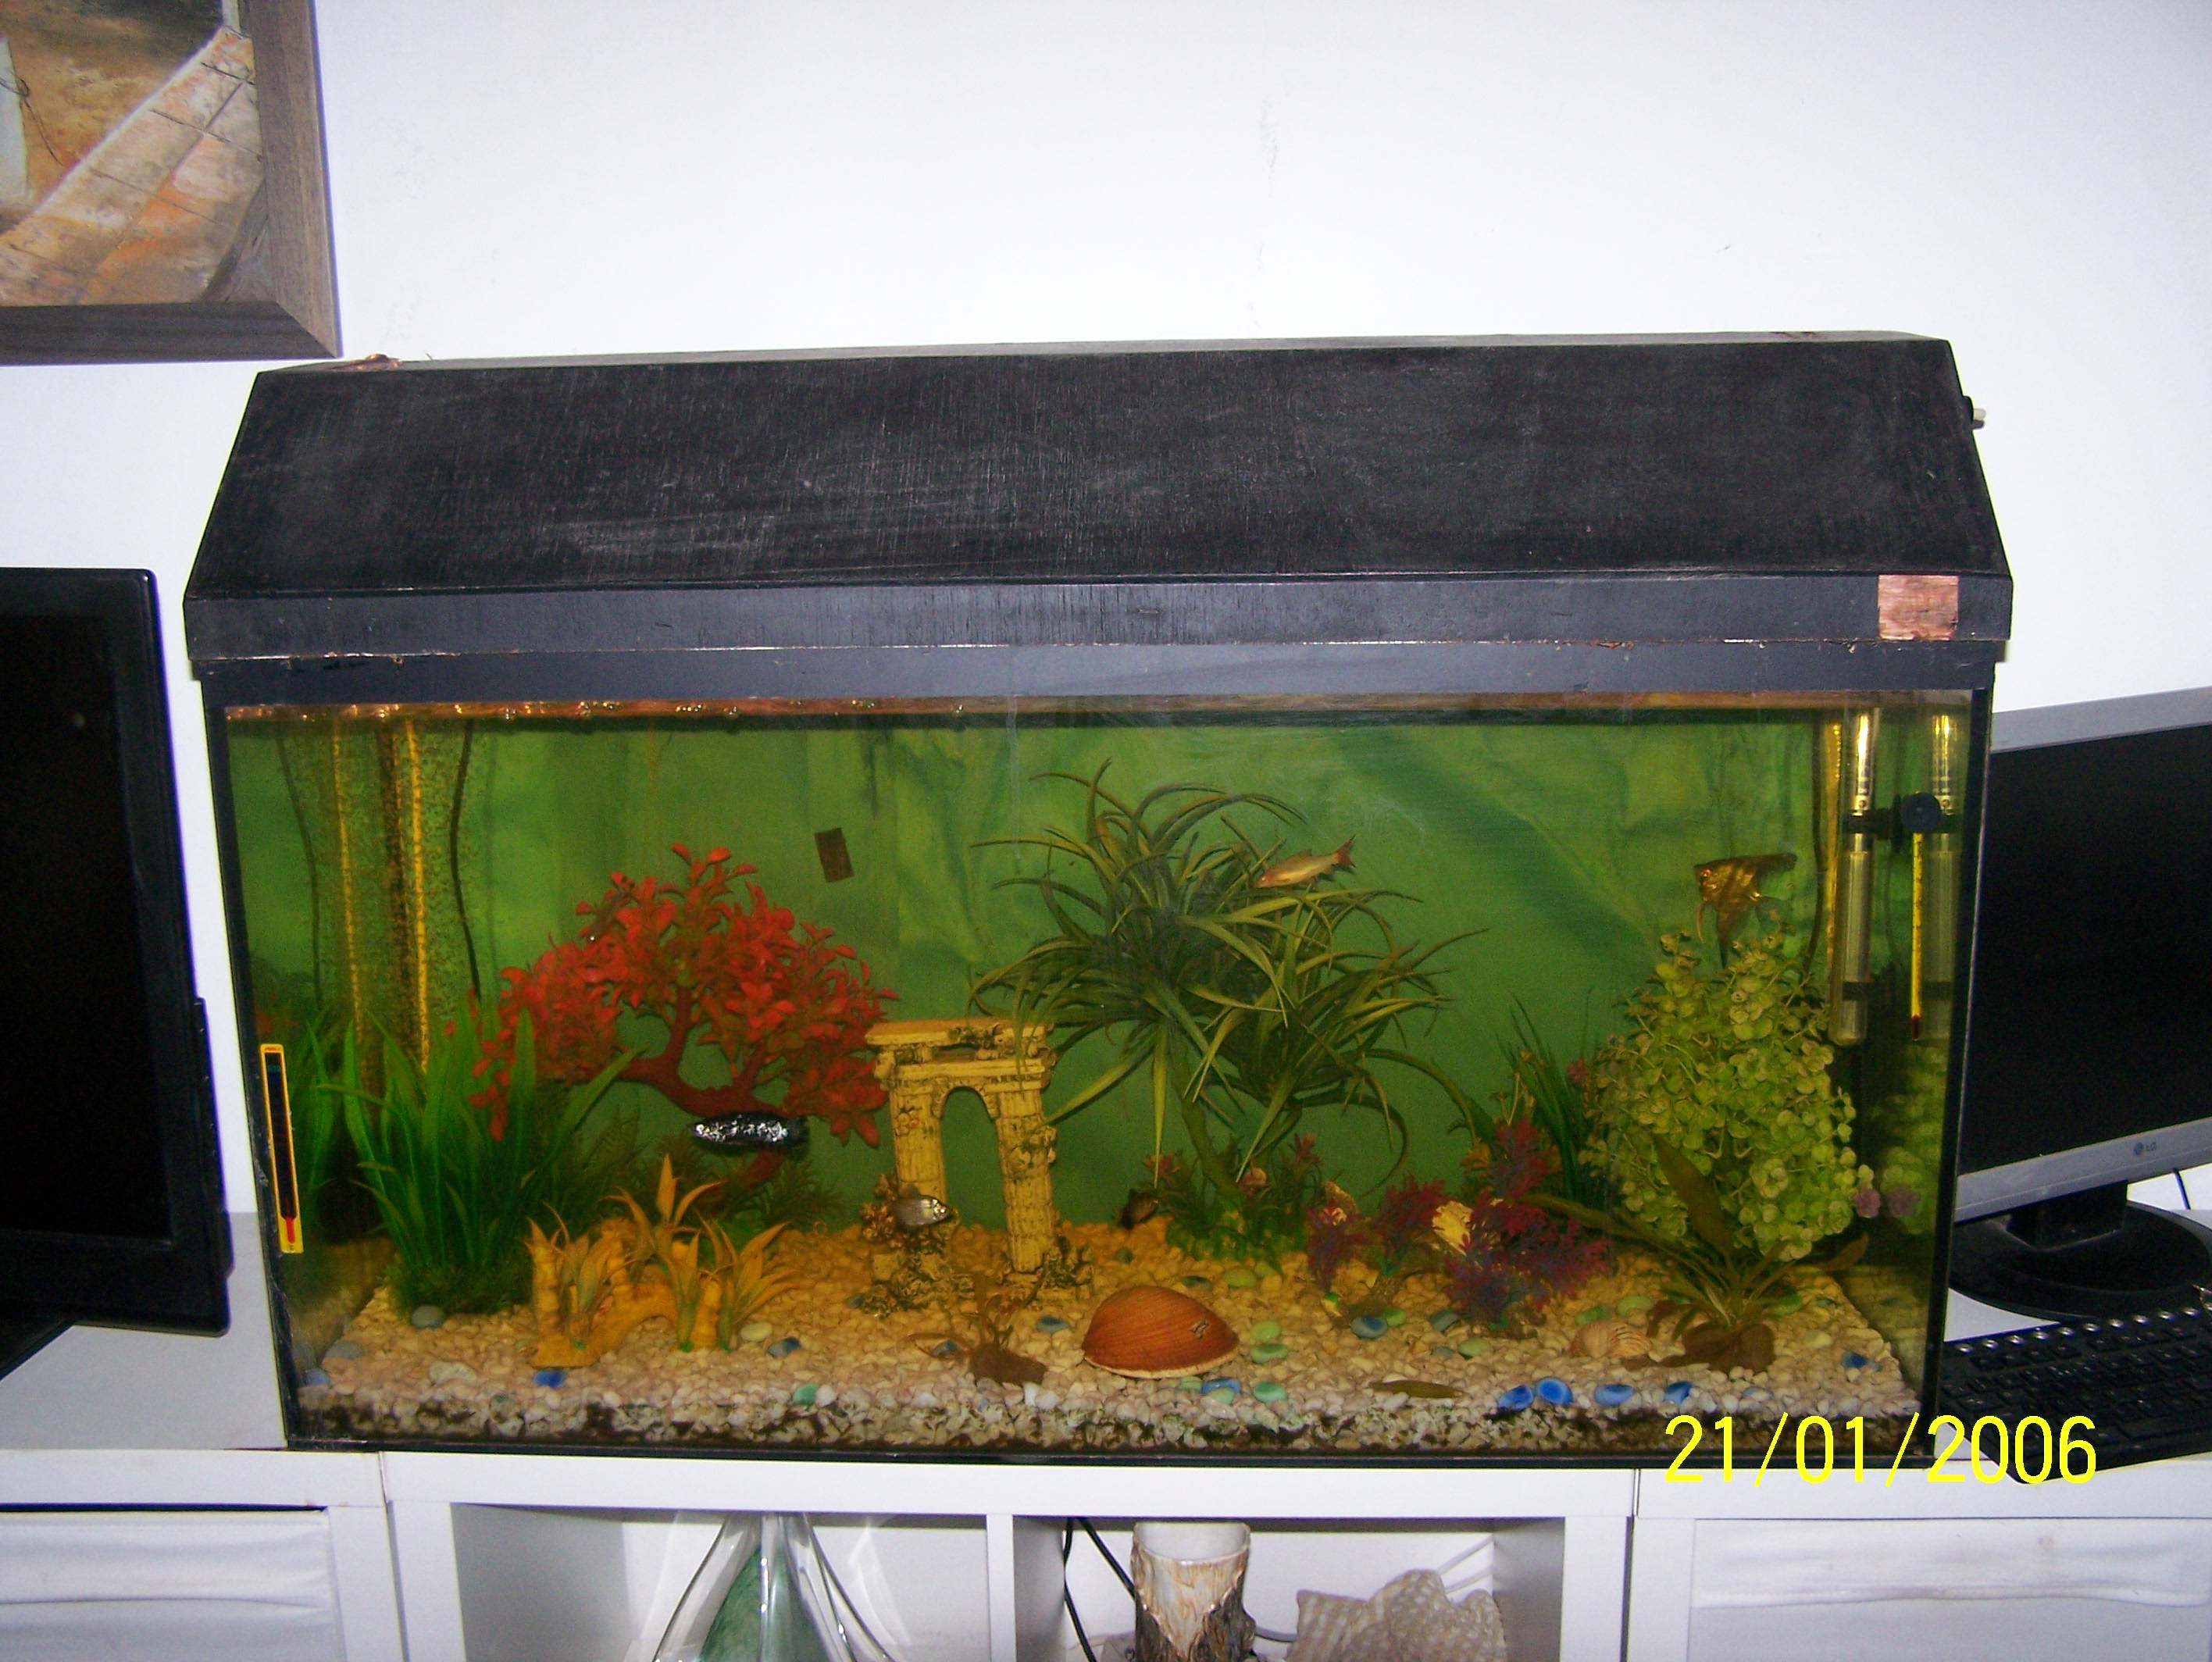 For sale: Various items including fish tank, coffee table, furniture